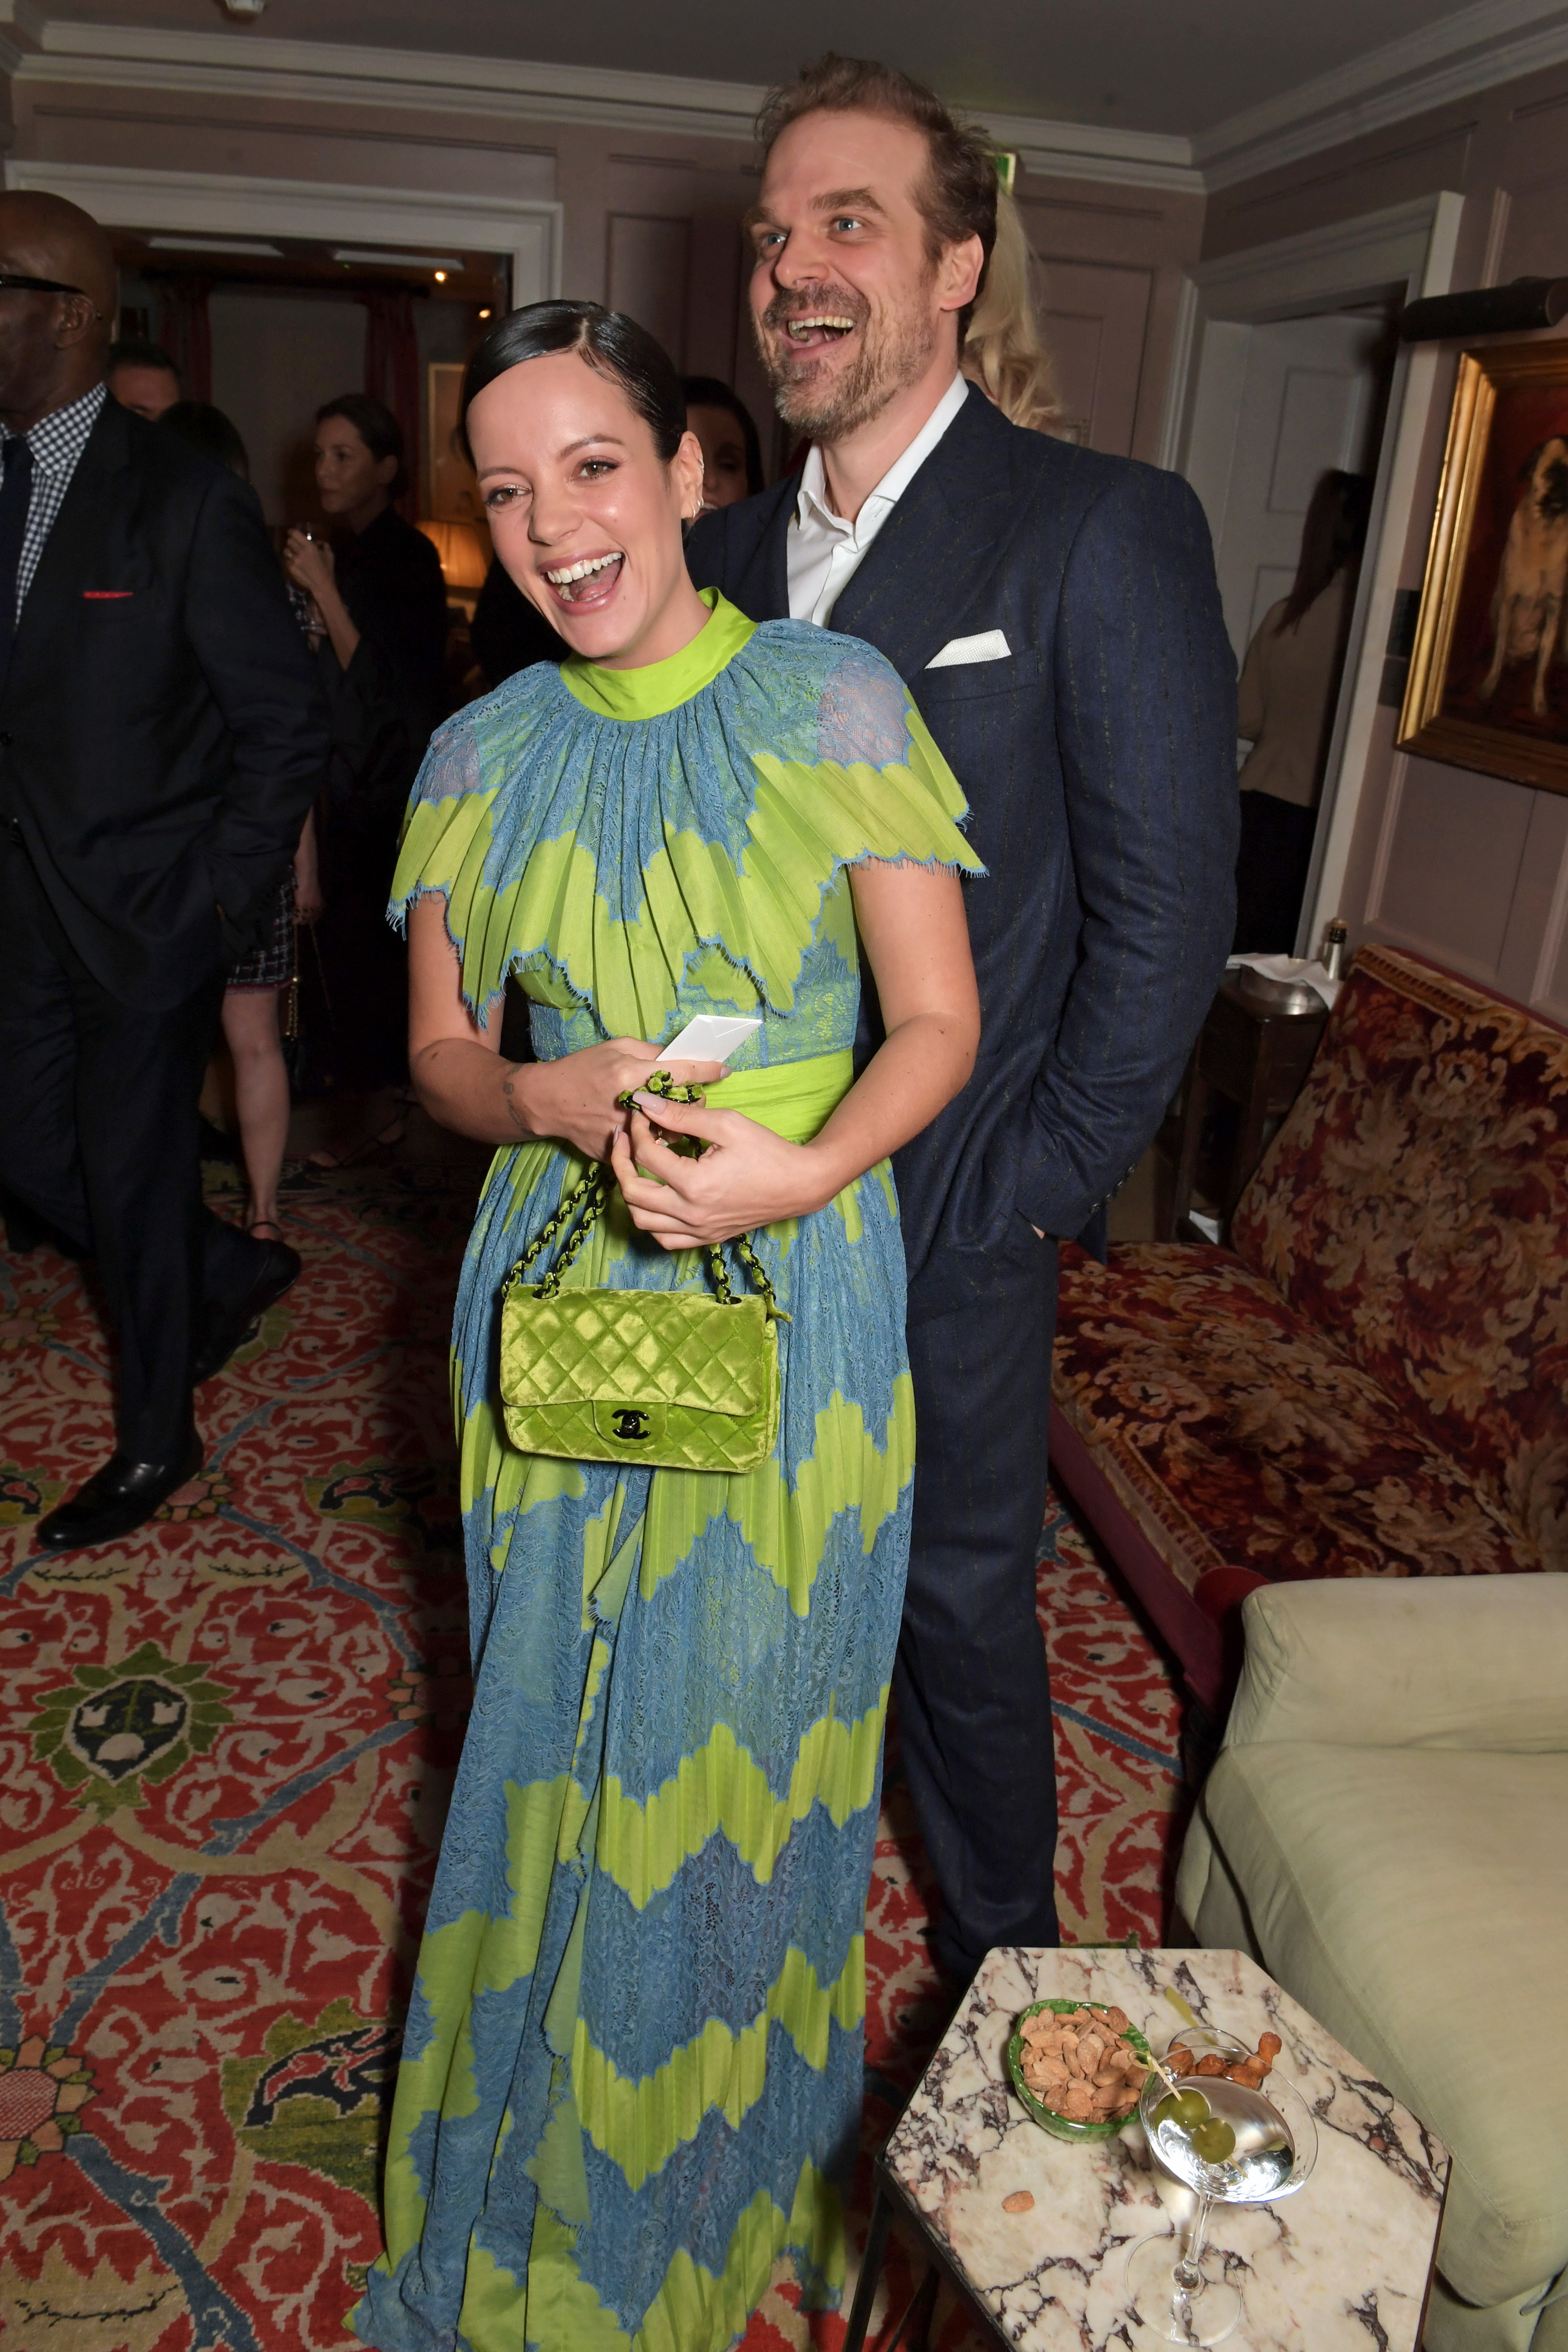 A smiling David Harbour standing behind a smiling Lily Allen